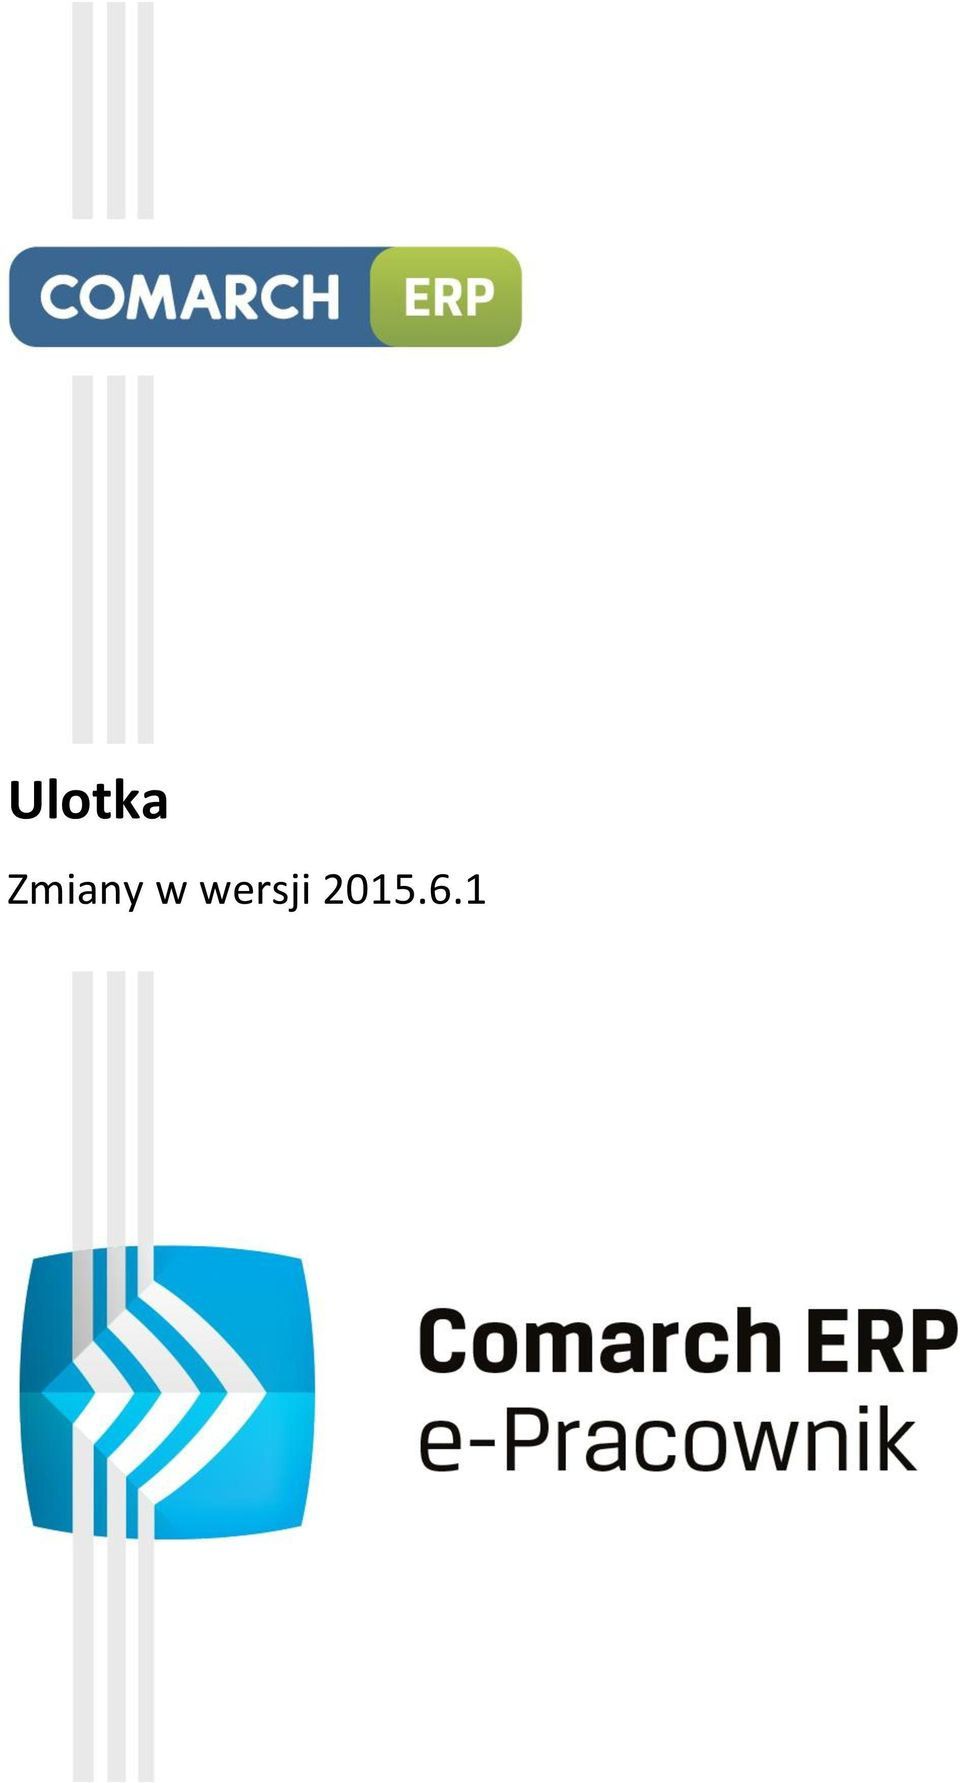 1 Comarch ERP